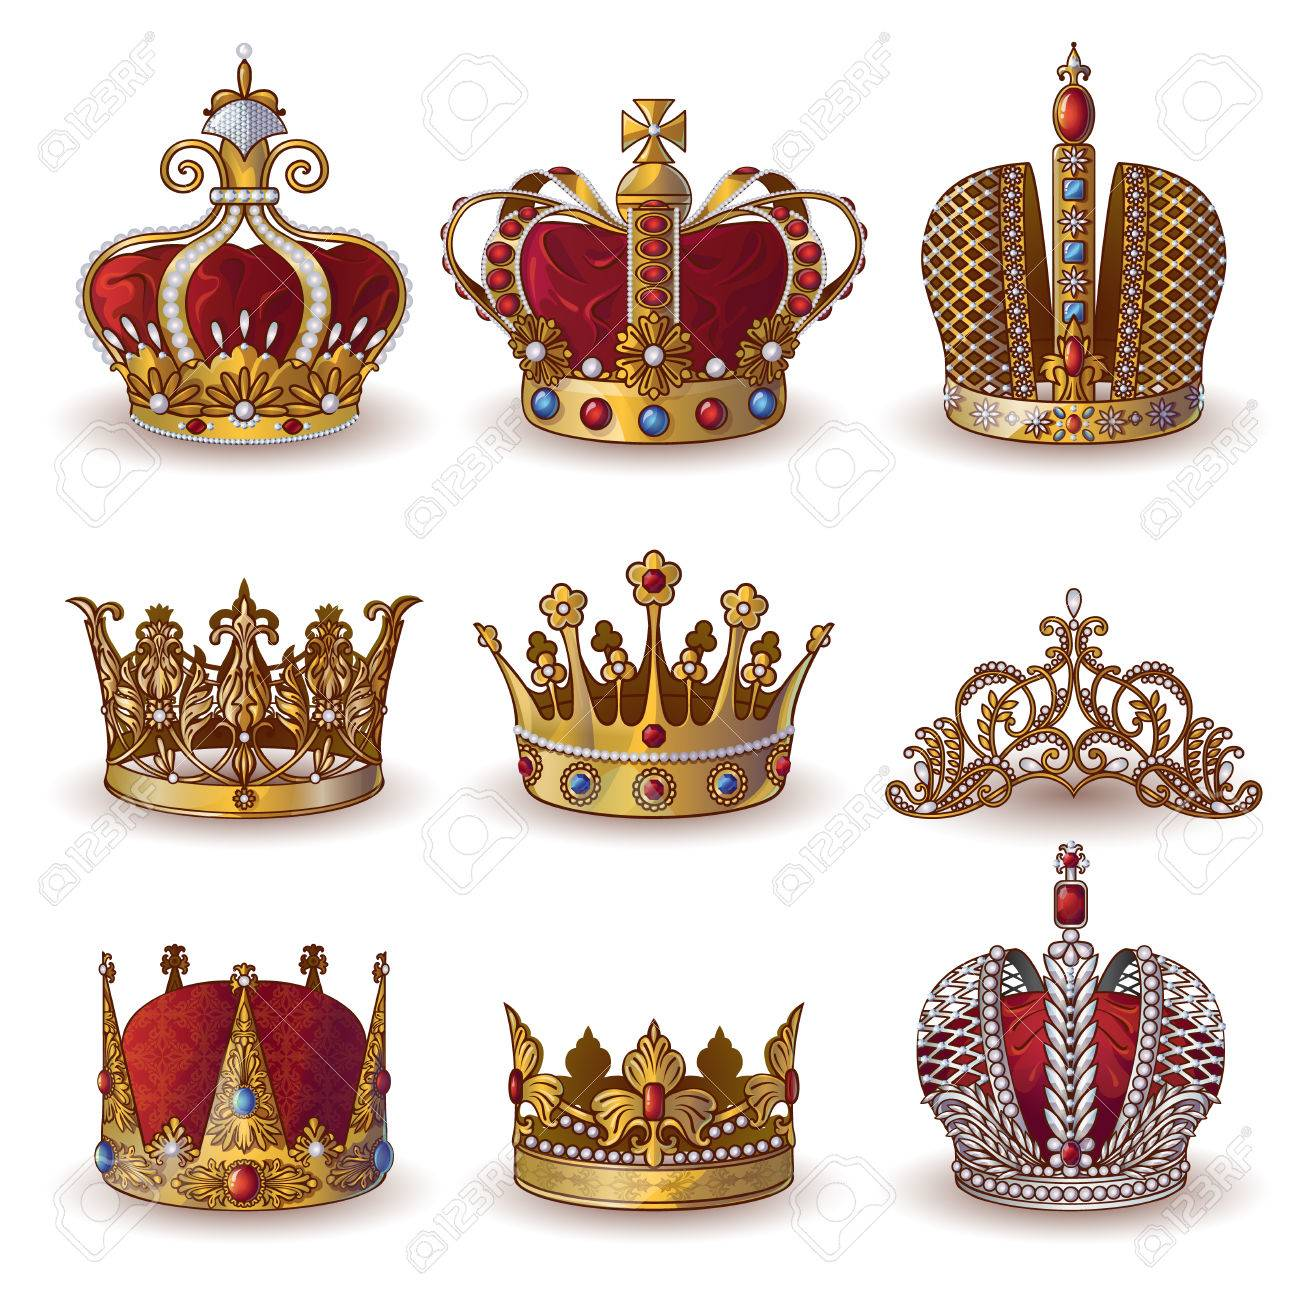 Royal Crowns Collection Of Gold And Silver Jewelry Of Different ...